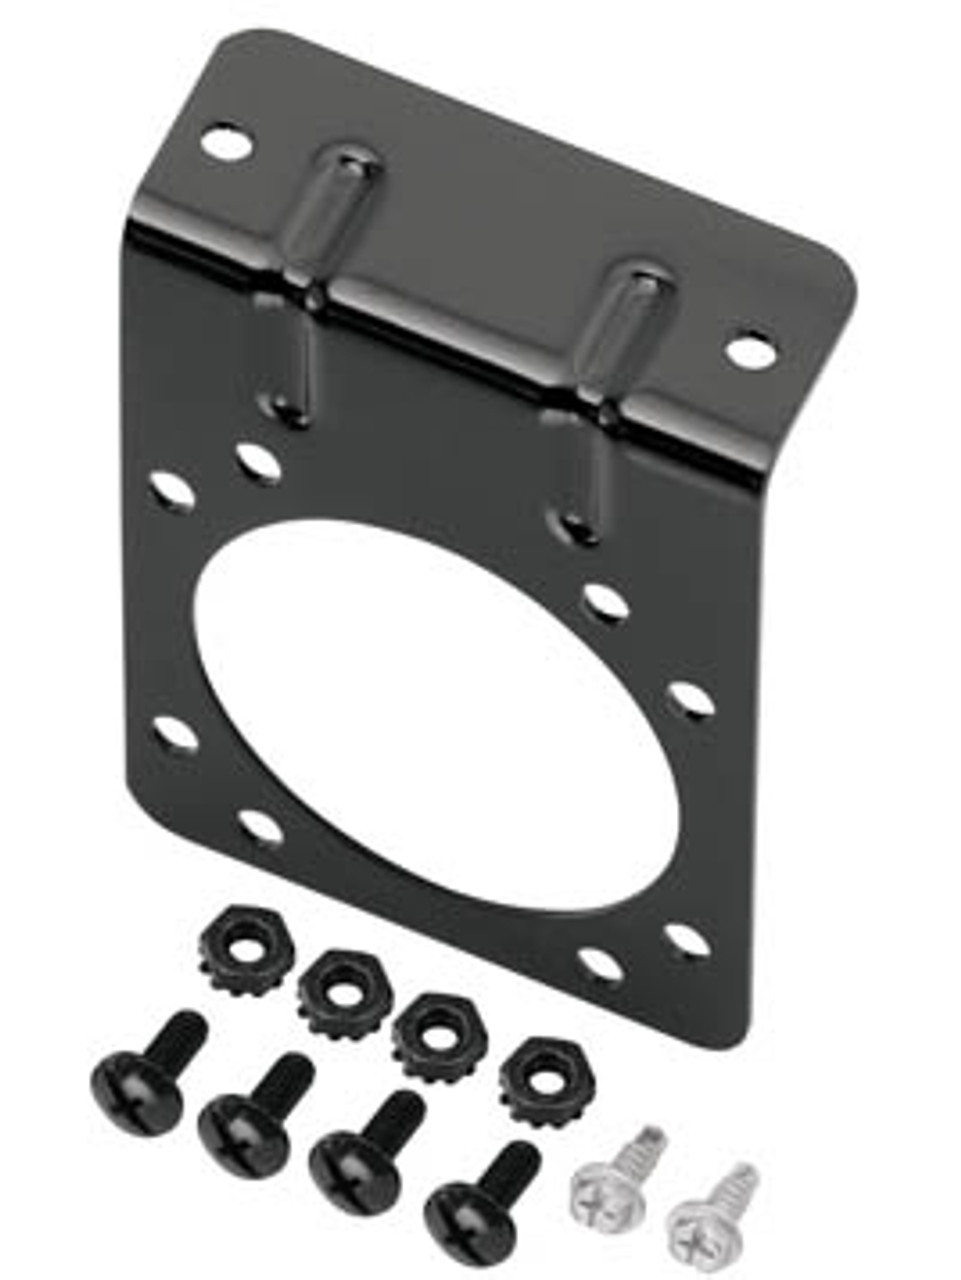 118138 --- Mounting Bracket for Standard 7-Way RV Round Connectors